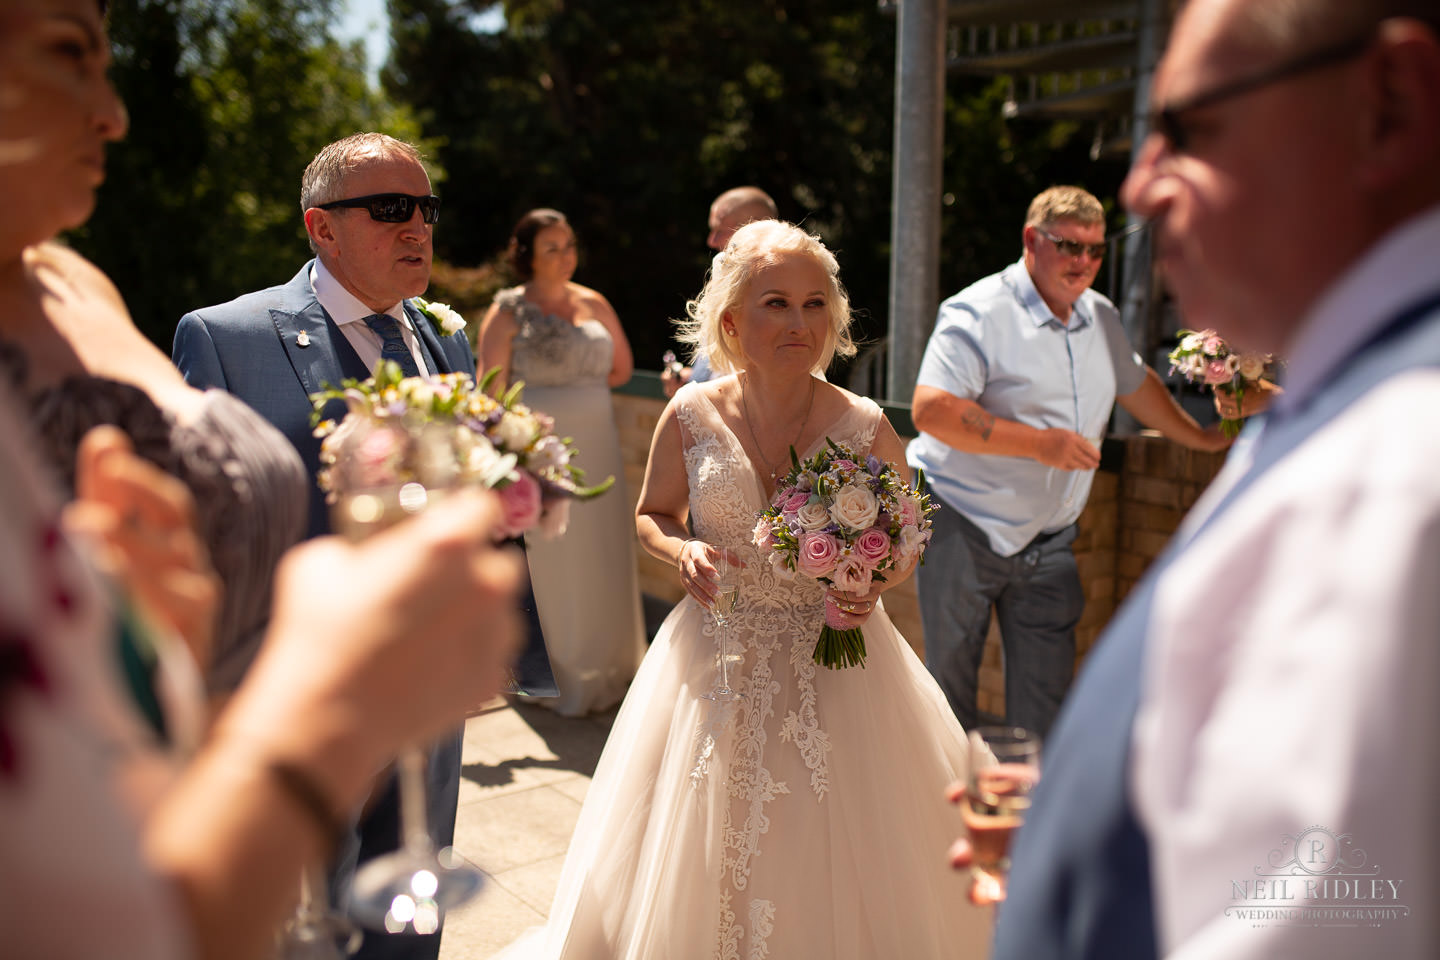 Bride outside holding her bouquet at Macdonald Portal Hotel, Tarporley